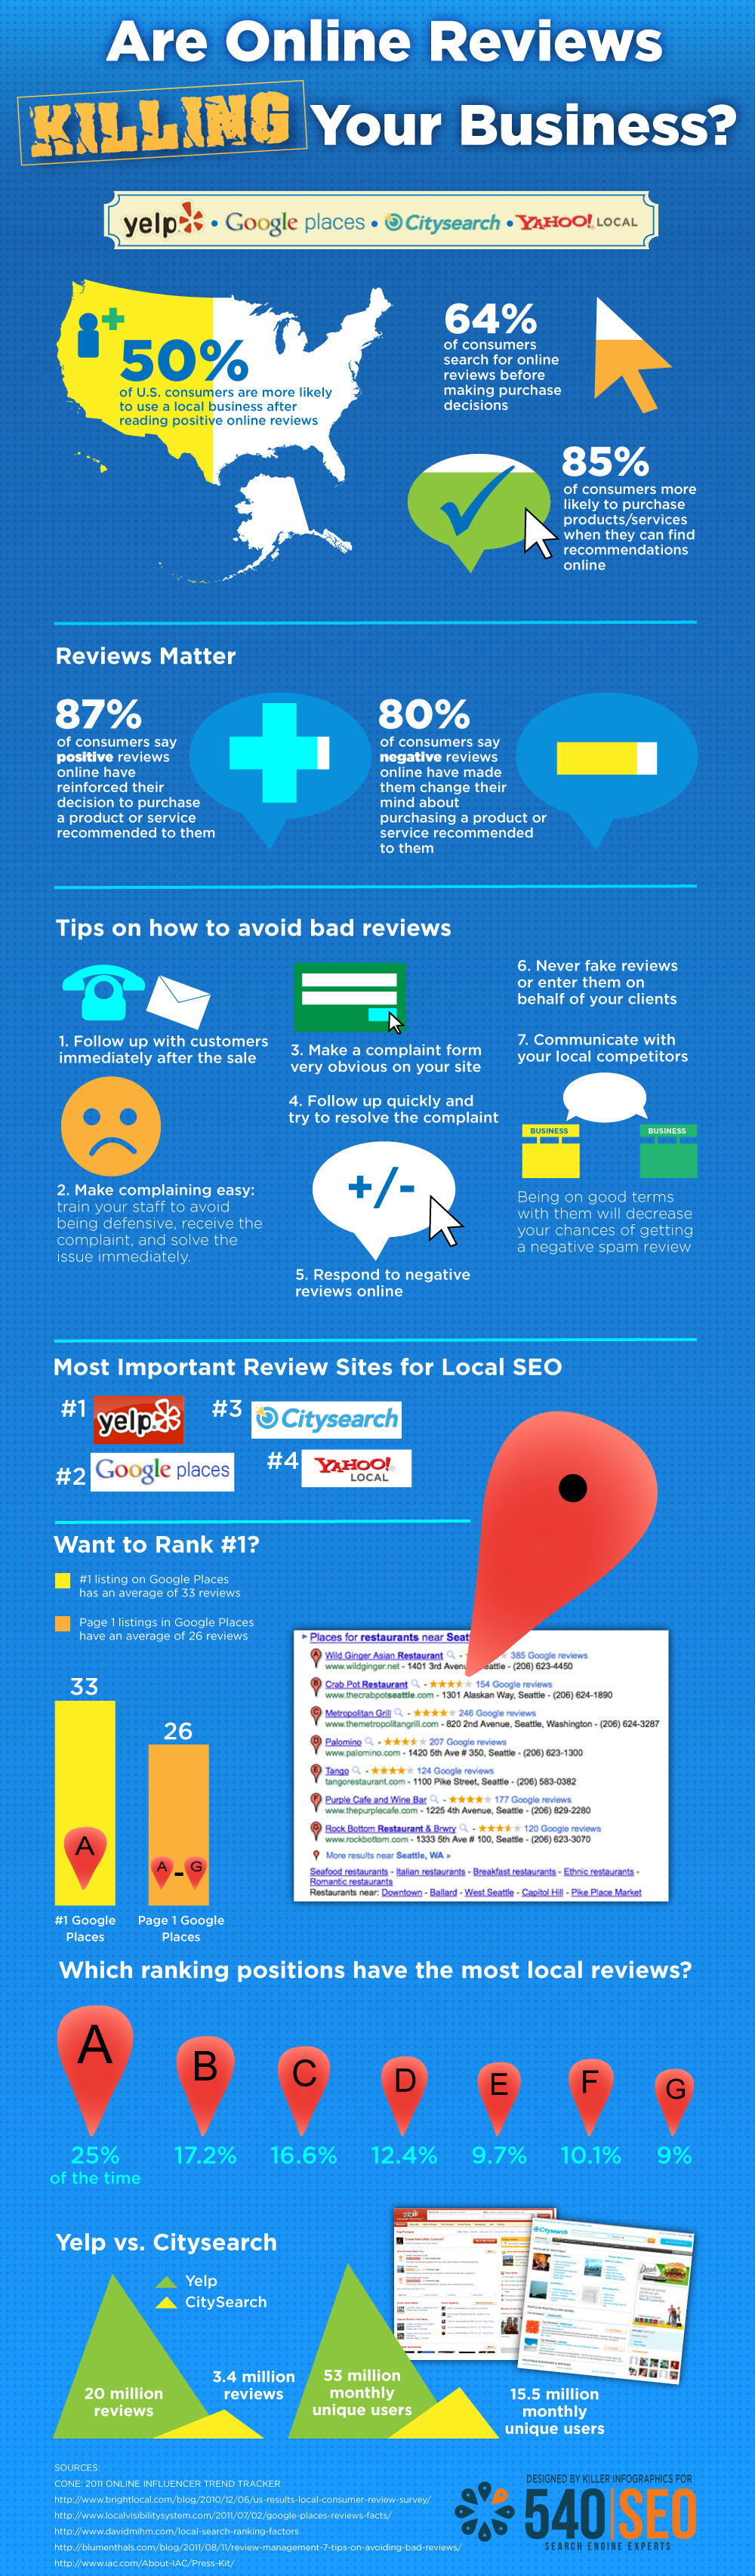 Are-Online-Reviews-Killing-Your-Business-Infographic